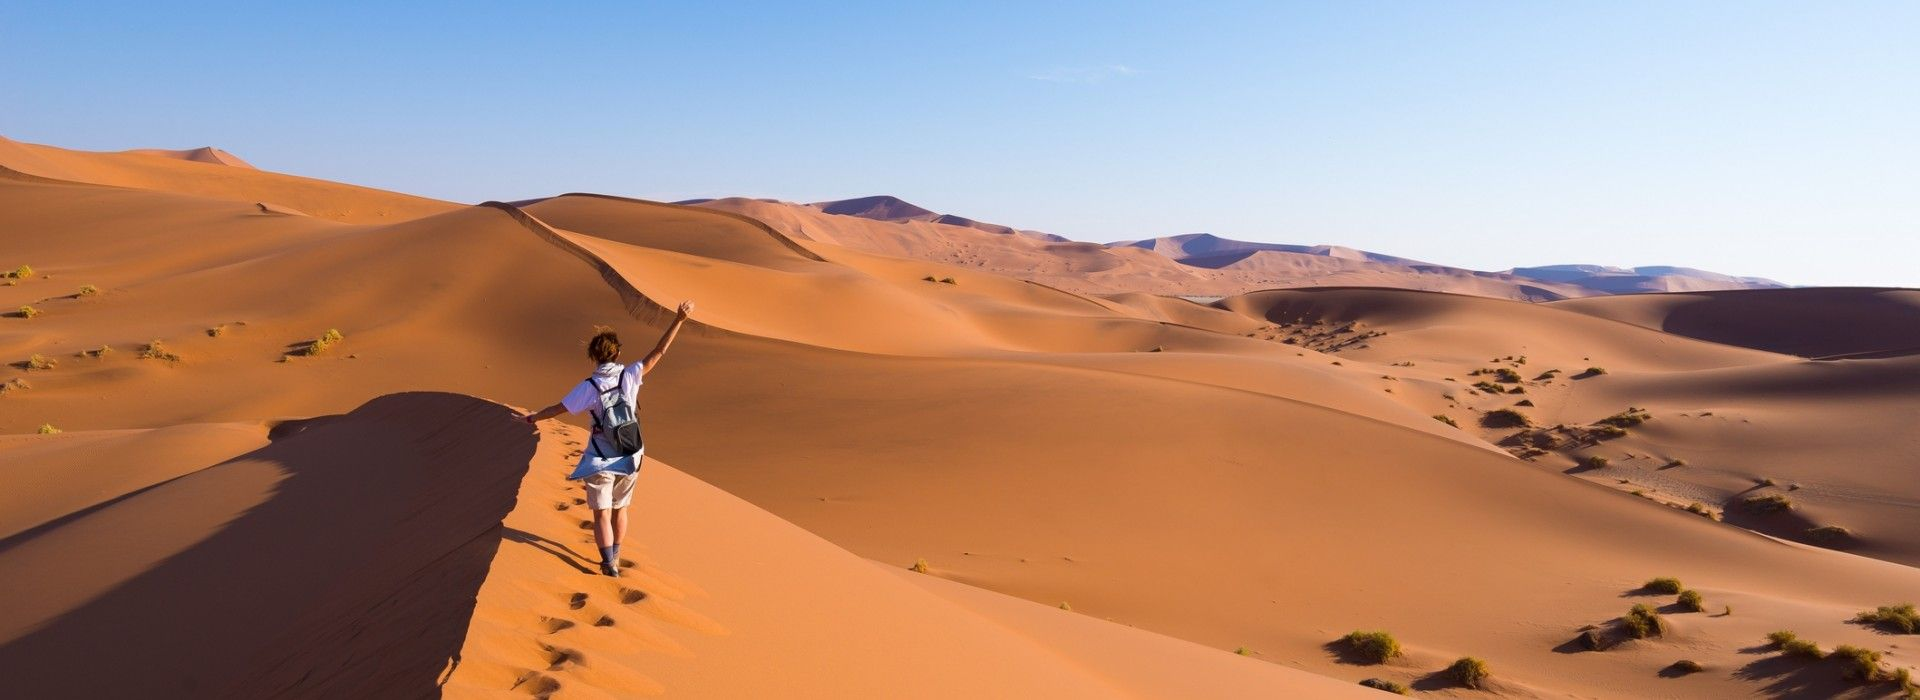 Natural landmarks sightseeing Tours in Namibia